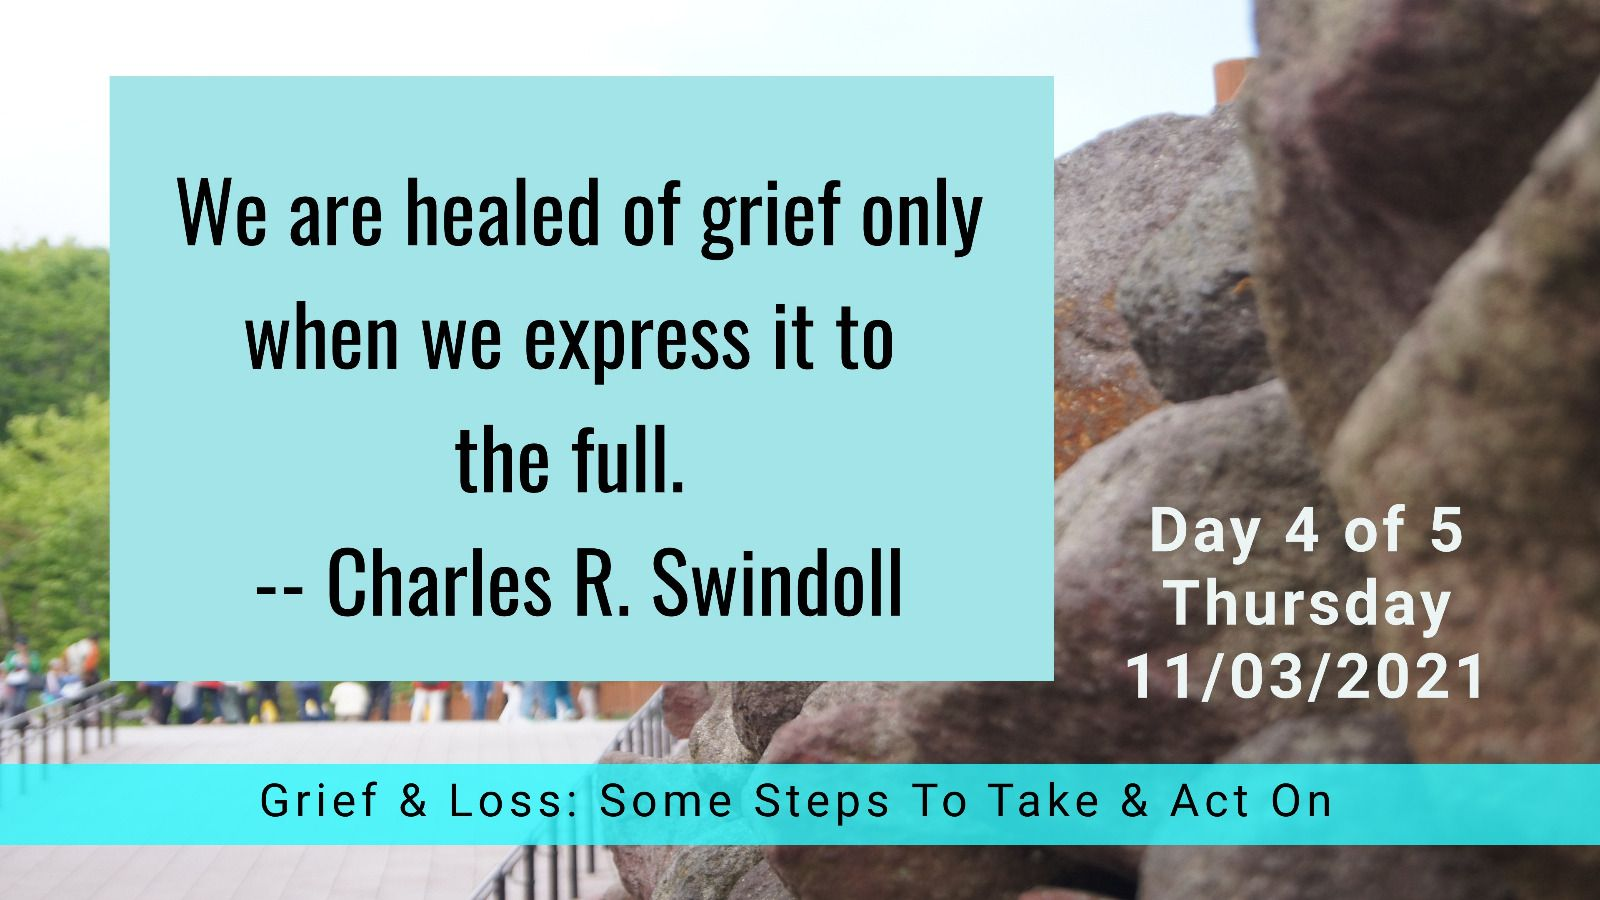 grief & loss - day 4